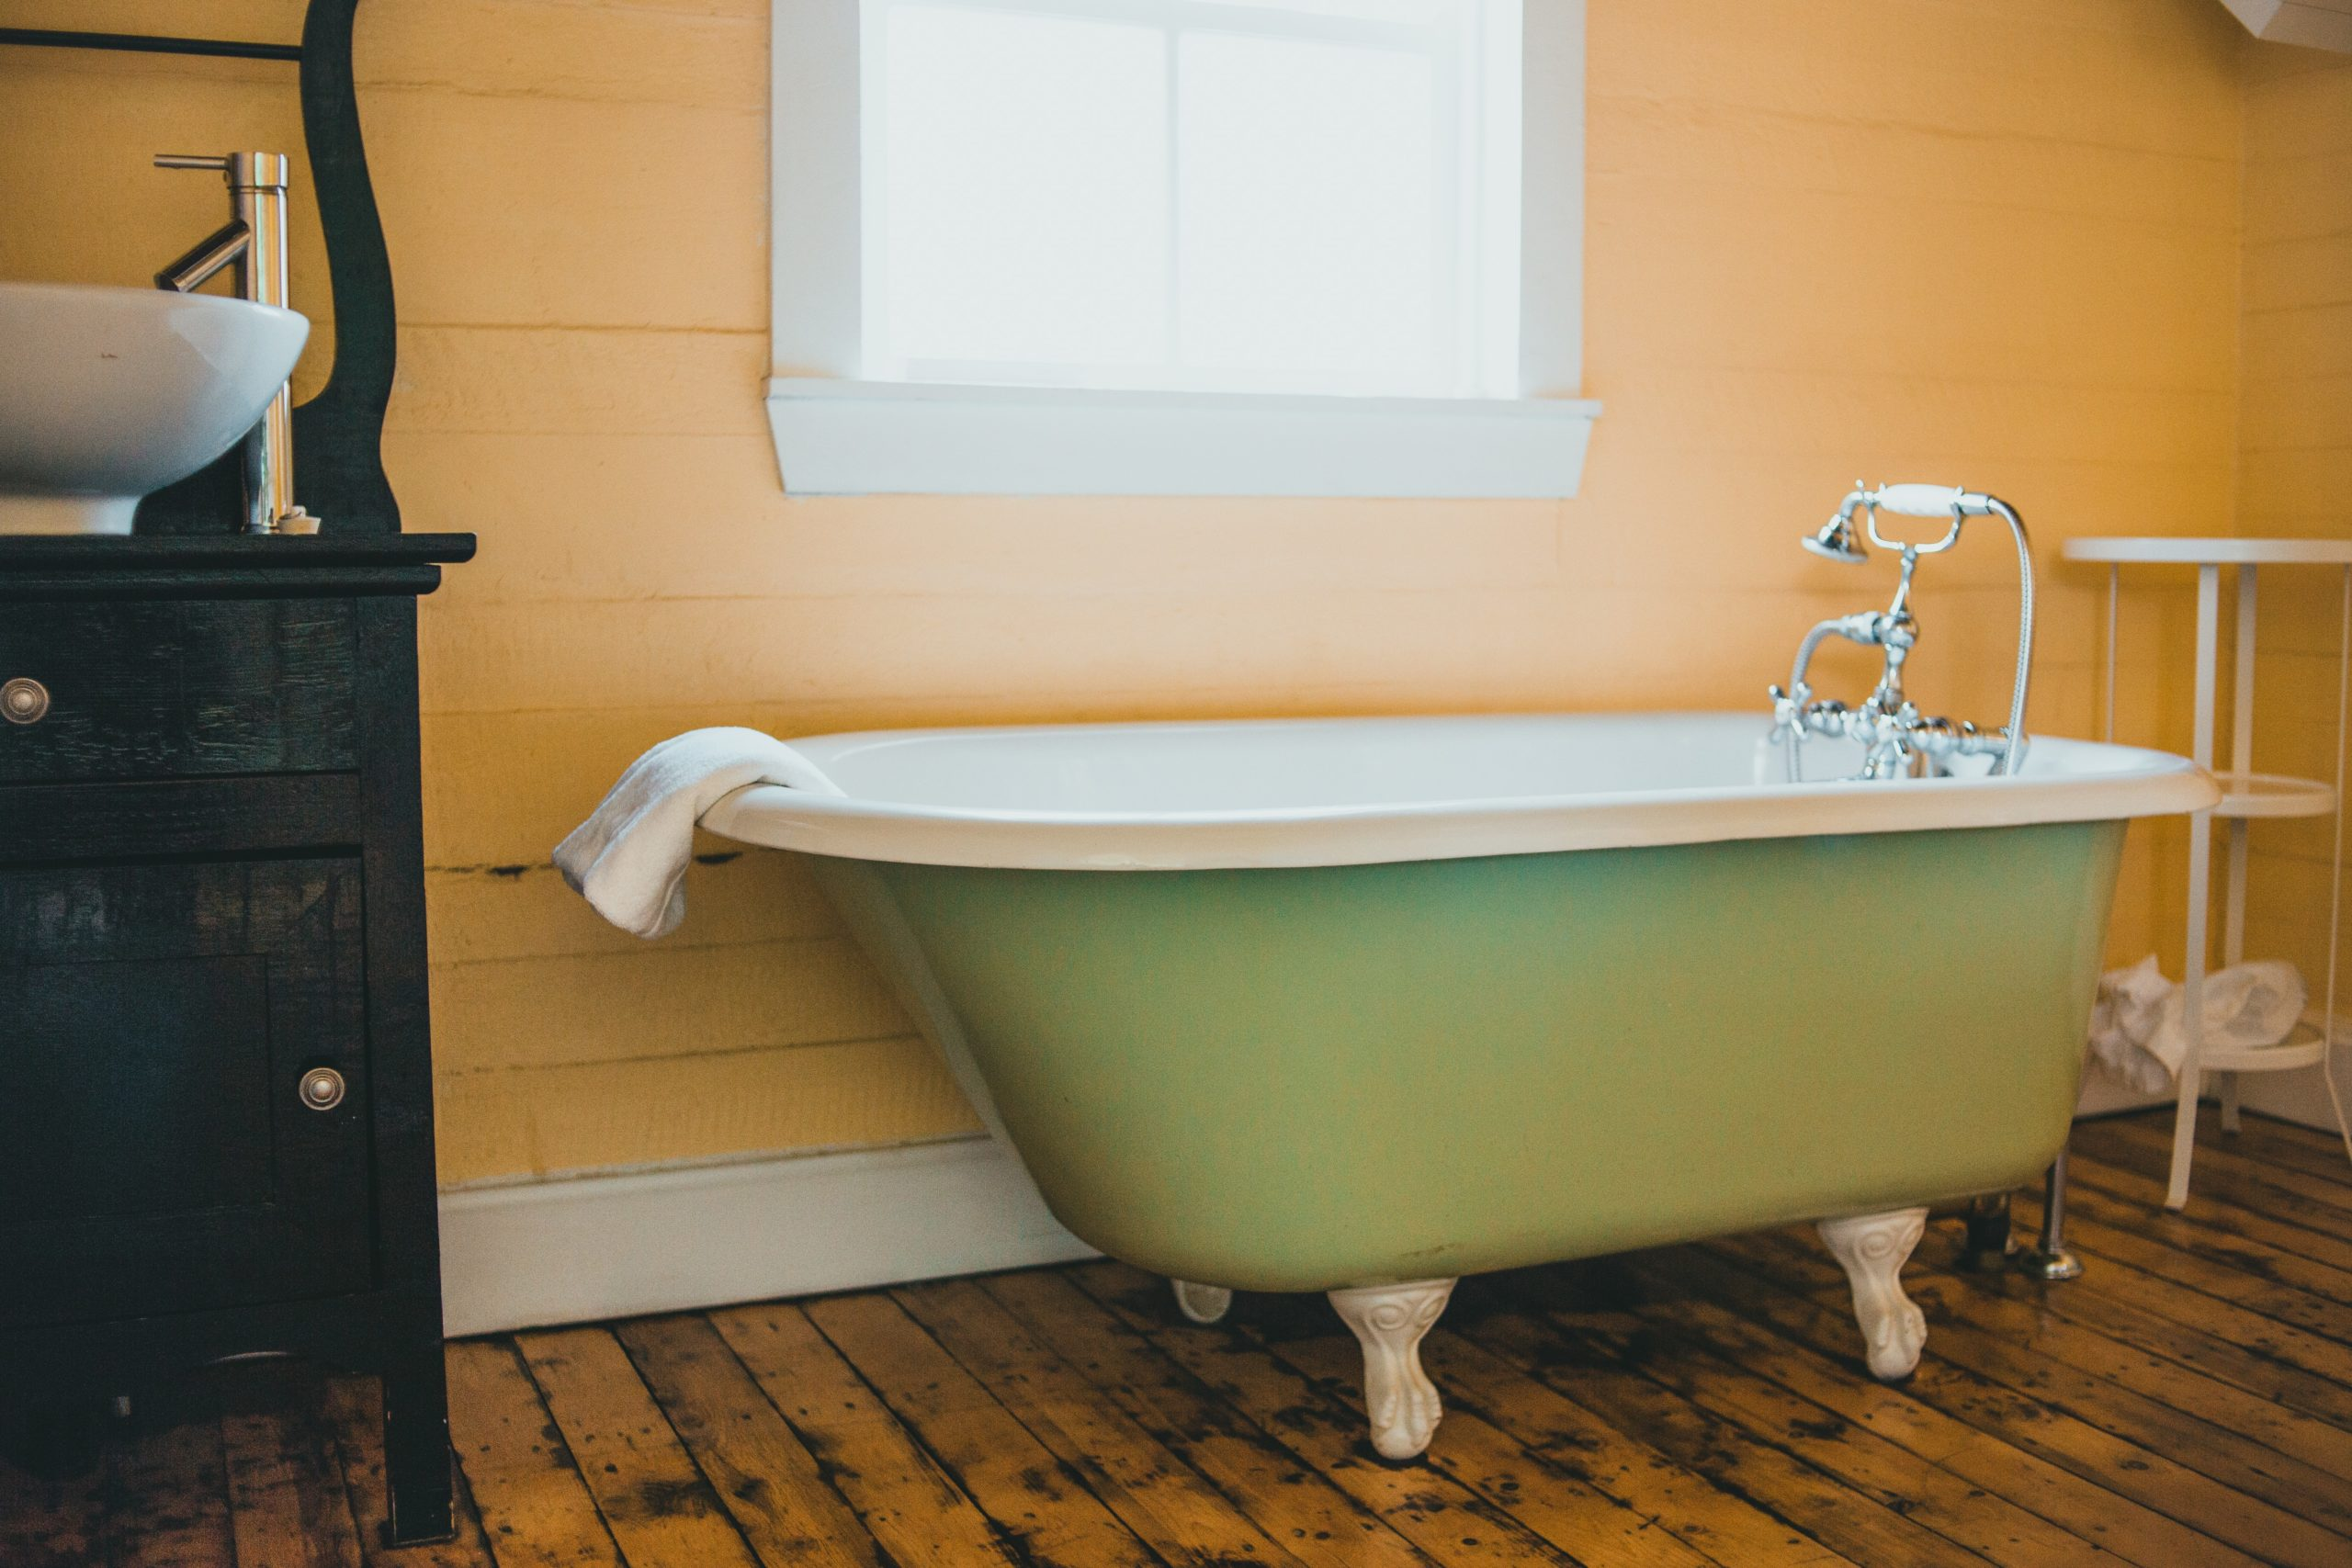 How to Remove Rust Stains From Fiberglass Tub